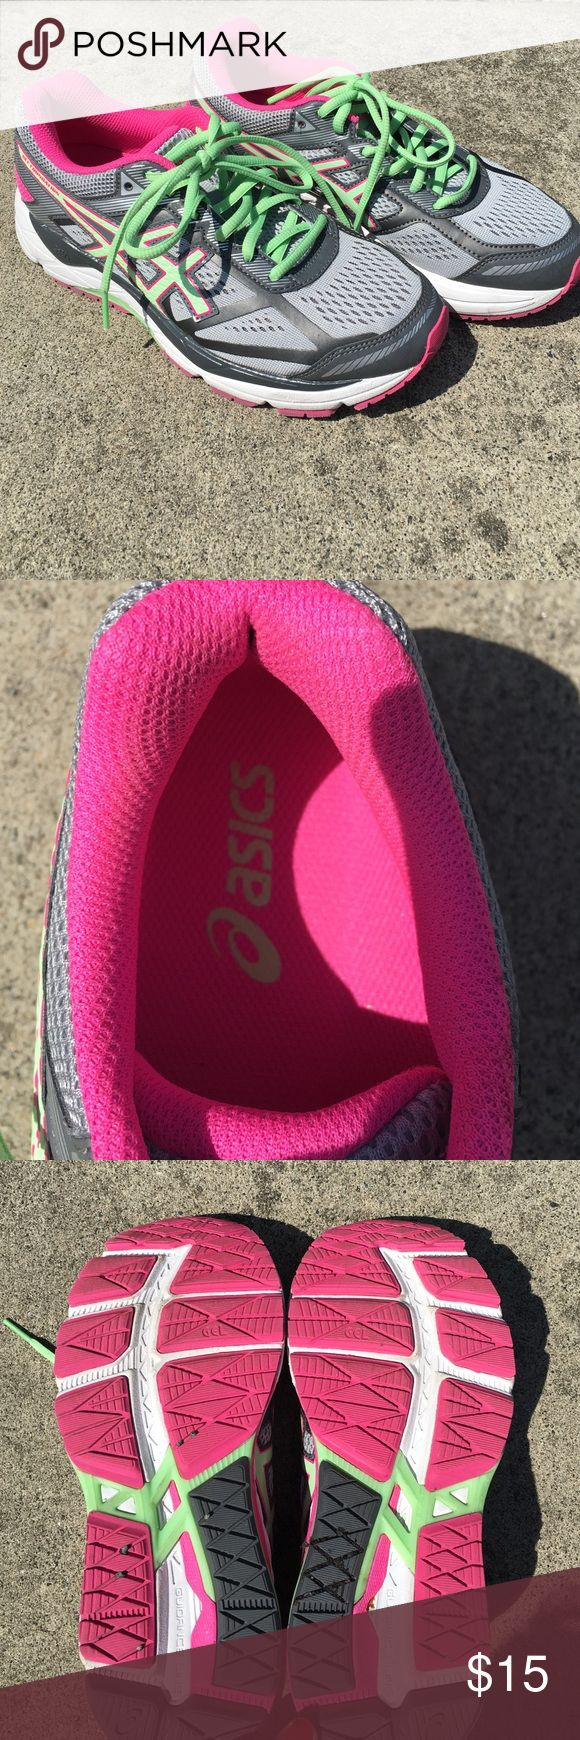 Asics Gel Foundation Sneakers Barely ever worn! Inside of the shoes are basically brand new. Asics Shoes Athletic Shoes